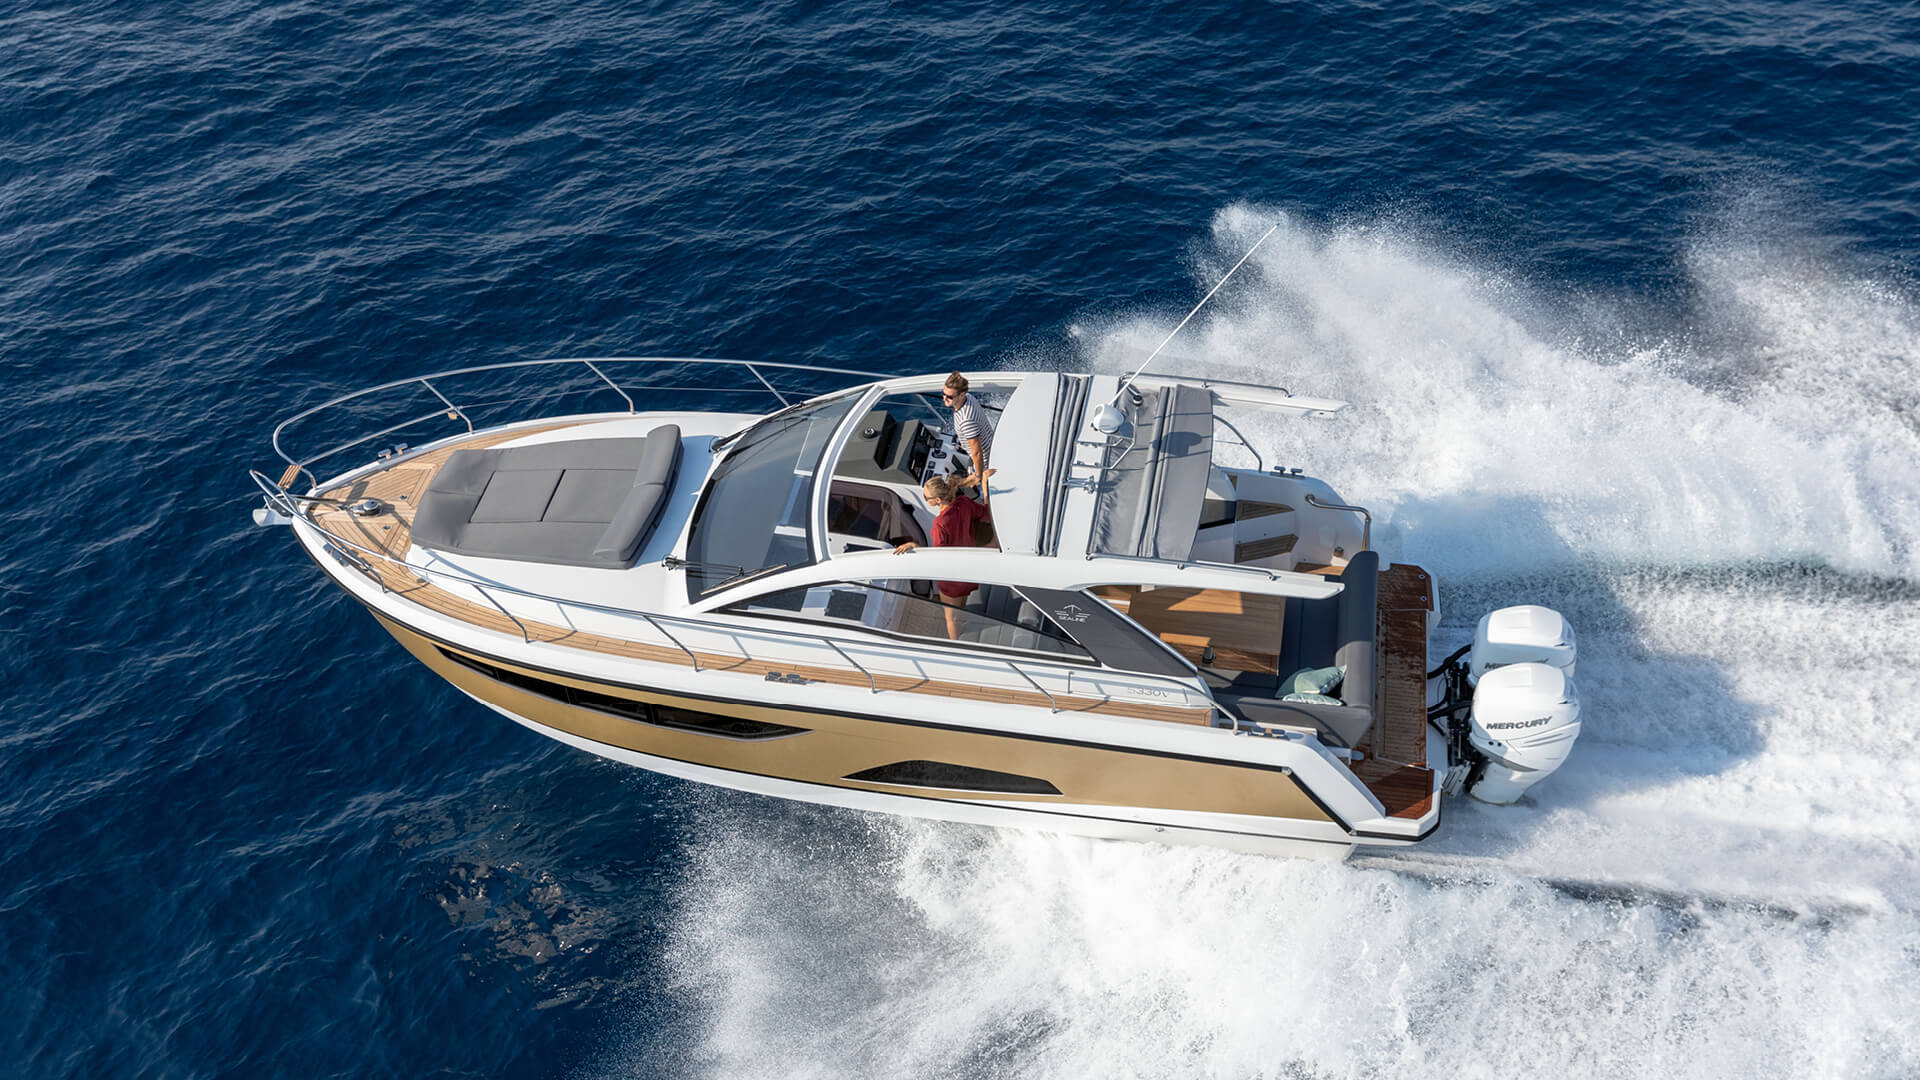 Sealine_S330v_LaunchMotiv.jpg | Sealine